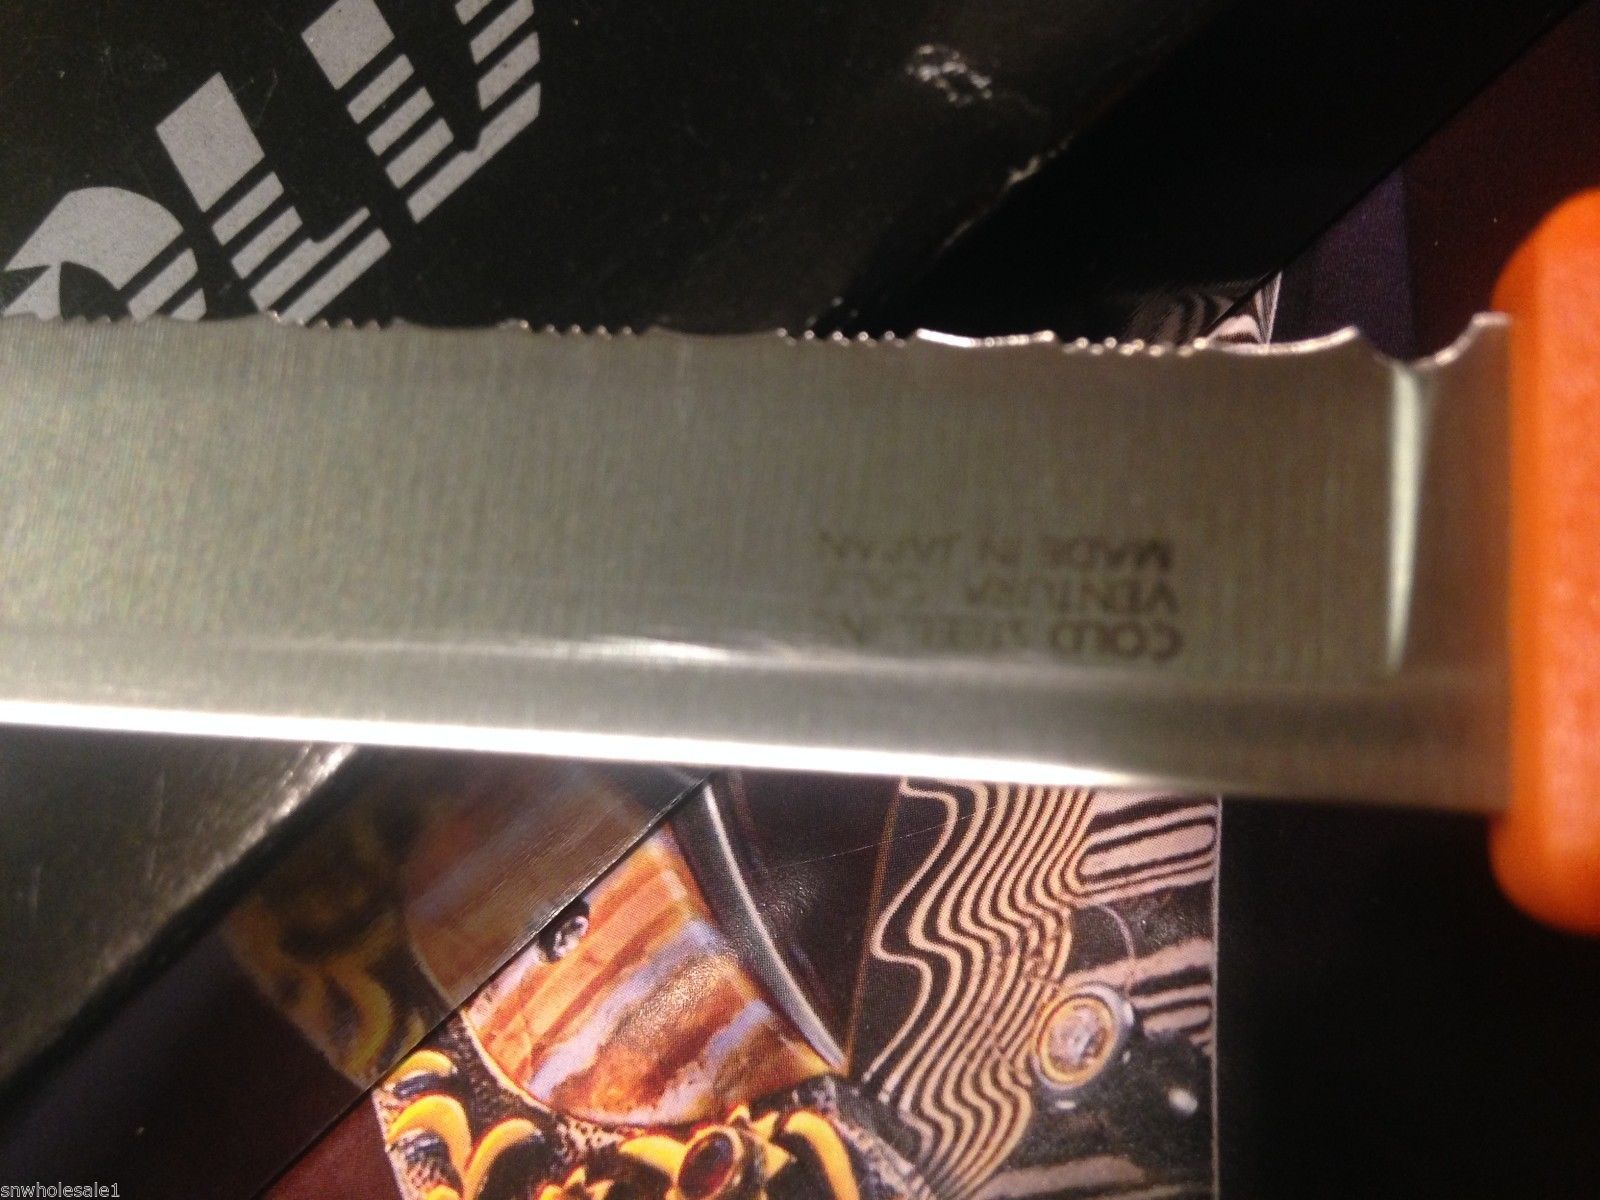 Reverse of the blade where you can see the Cold steel